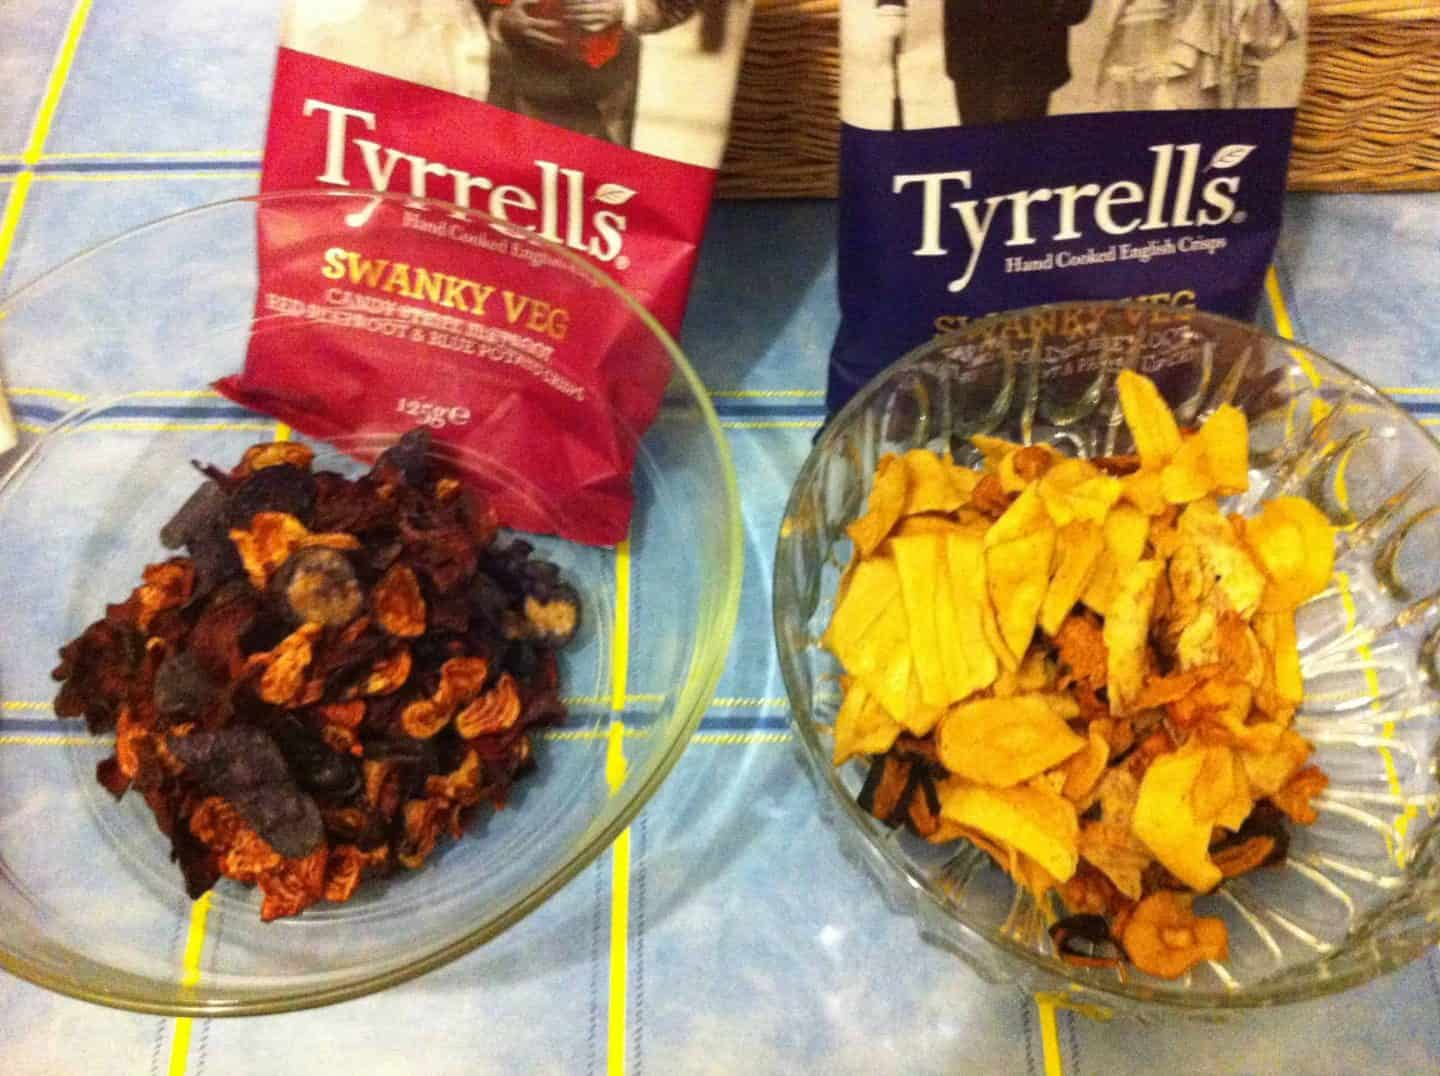 The Gluten Free Blogger's favourite gluten free crisps